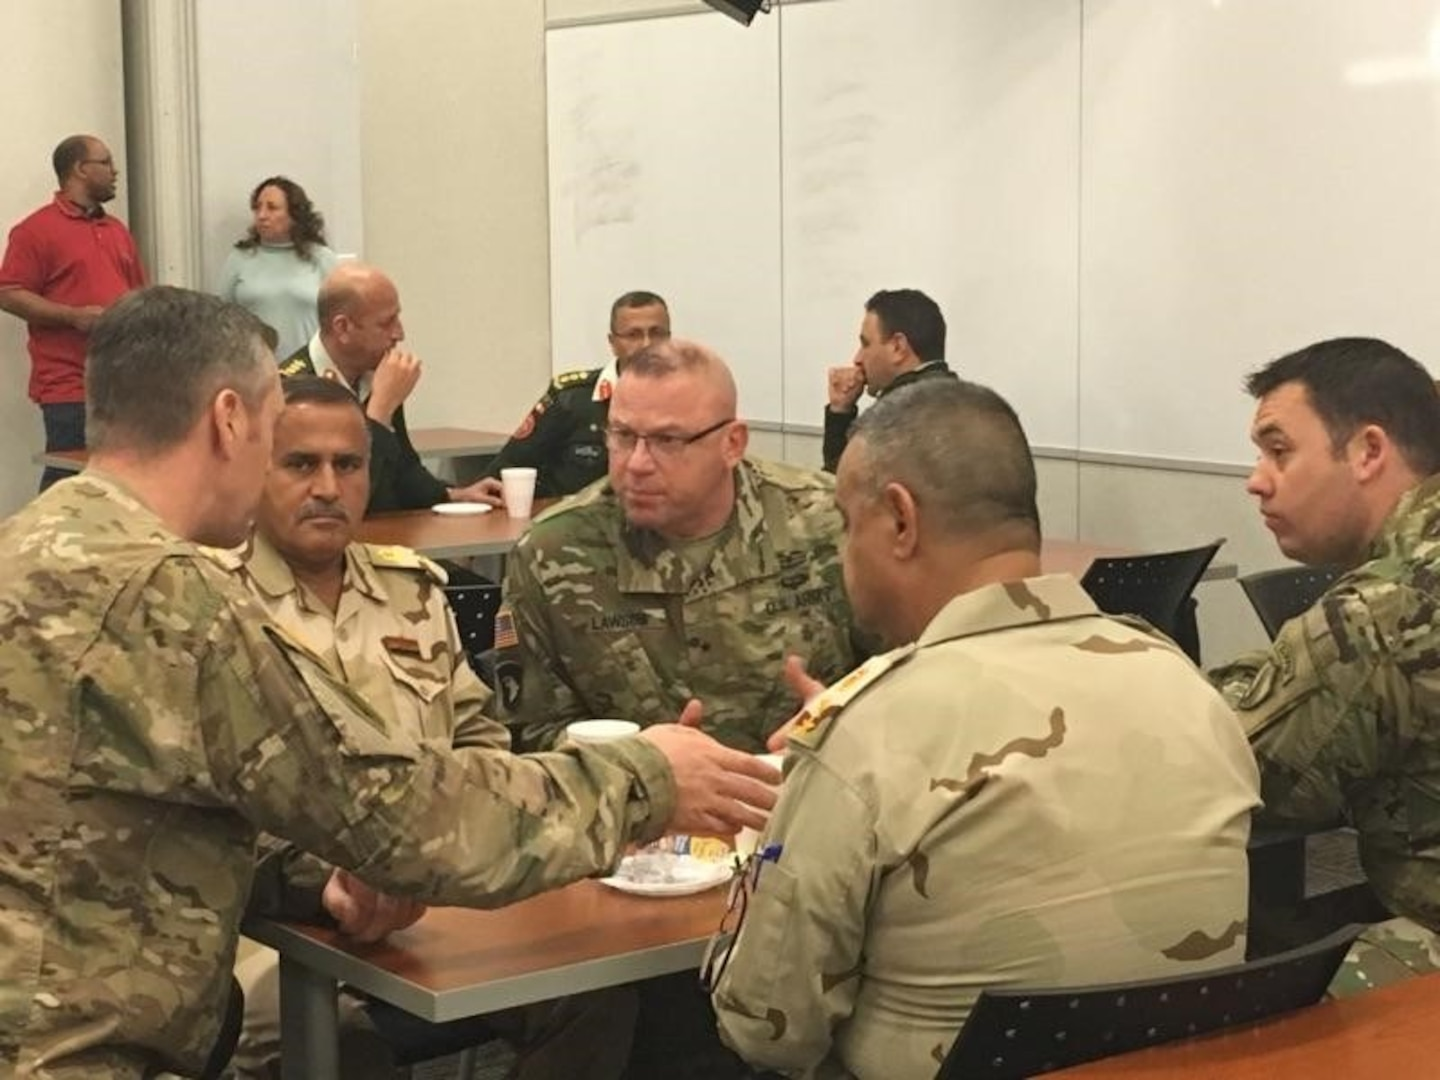 In September 2016, Lawson leads a logistics symposium at Central Command Headquarters, Tampa Florida, with 13 countries from the Middle East, Gulf Coast countries, Levant and Central Asia to improve International Coalition interoperability in the Central Command area of responsibility.